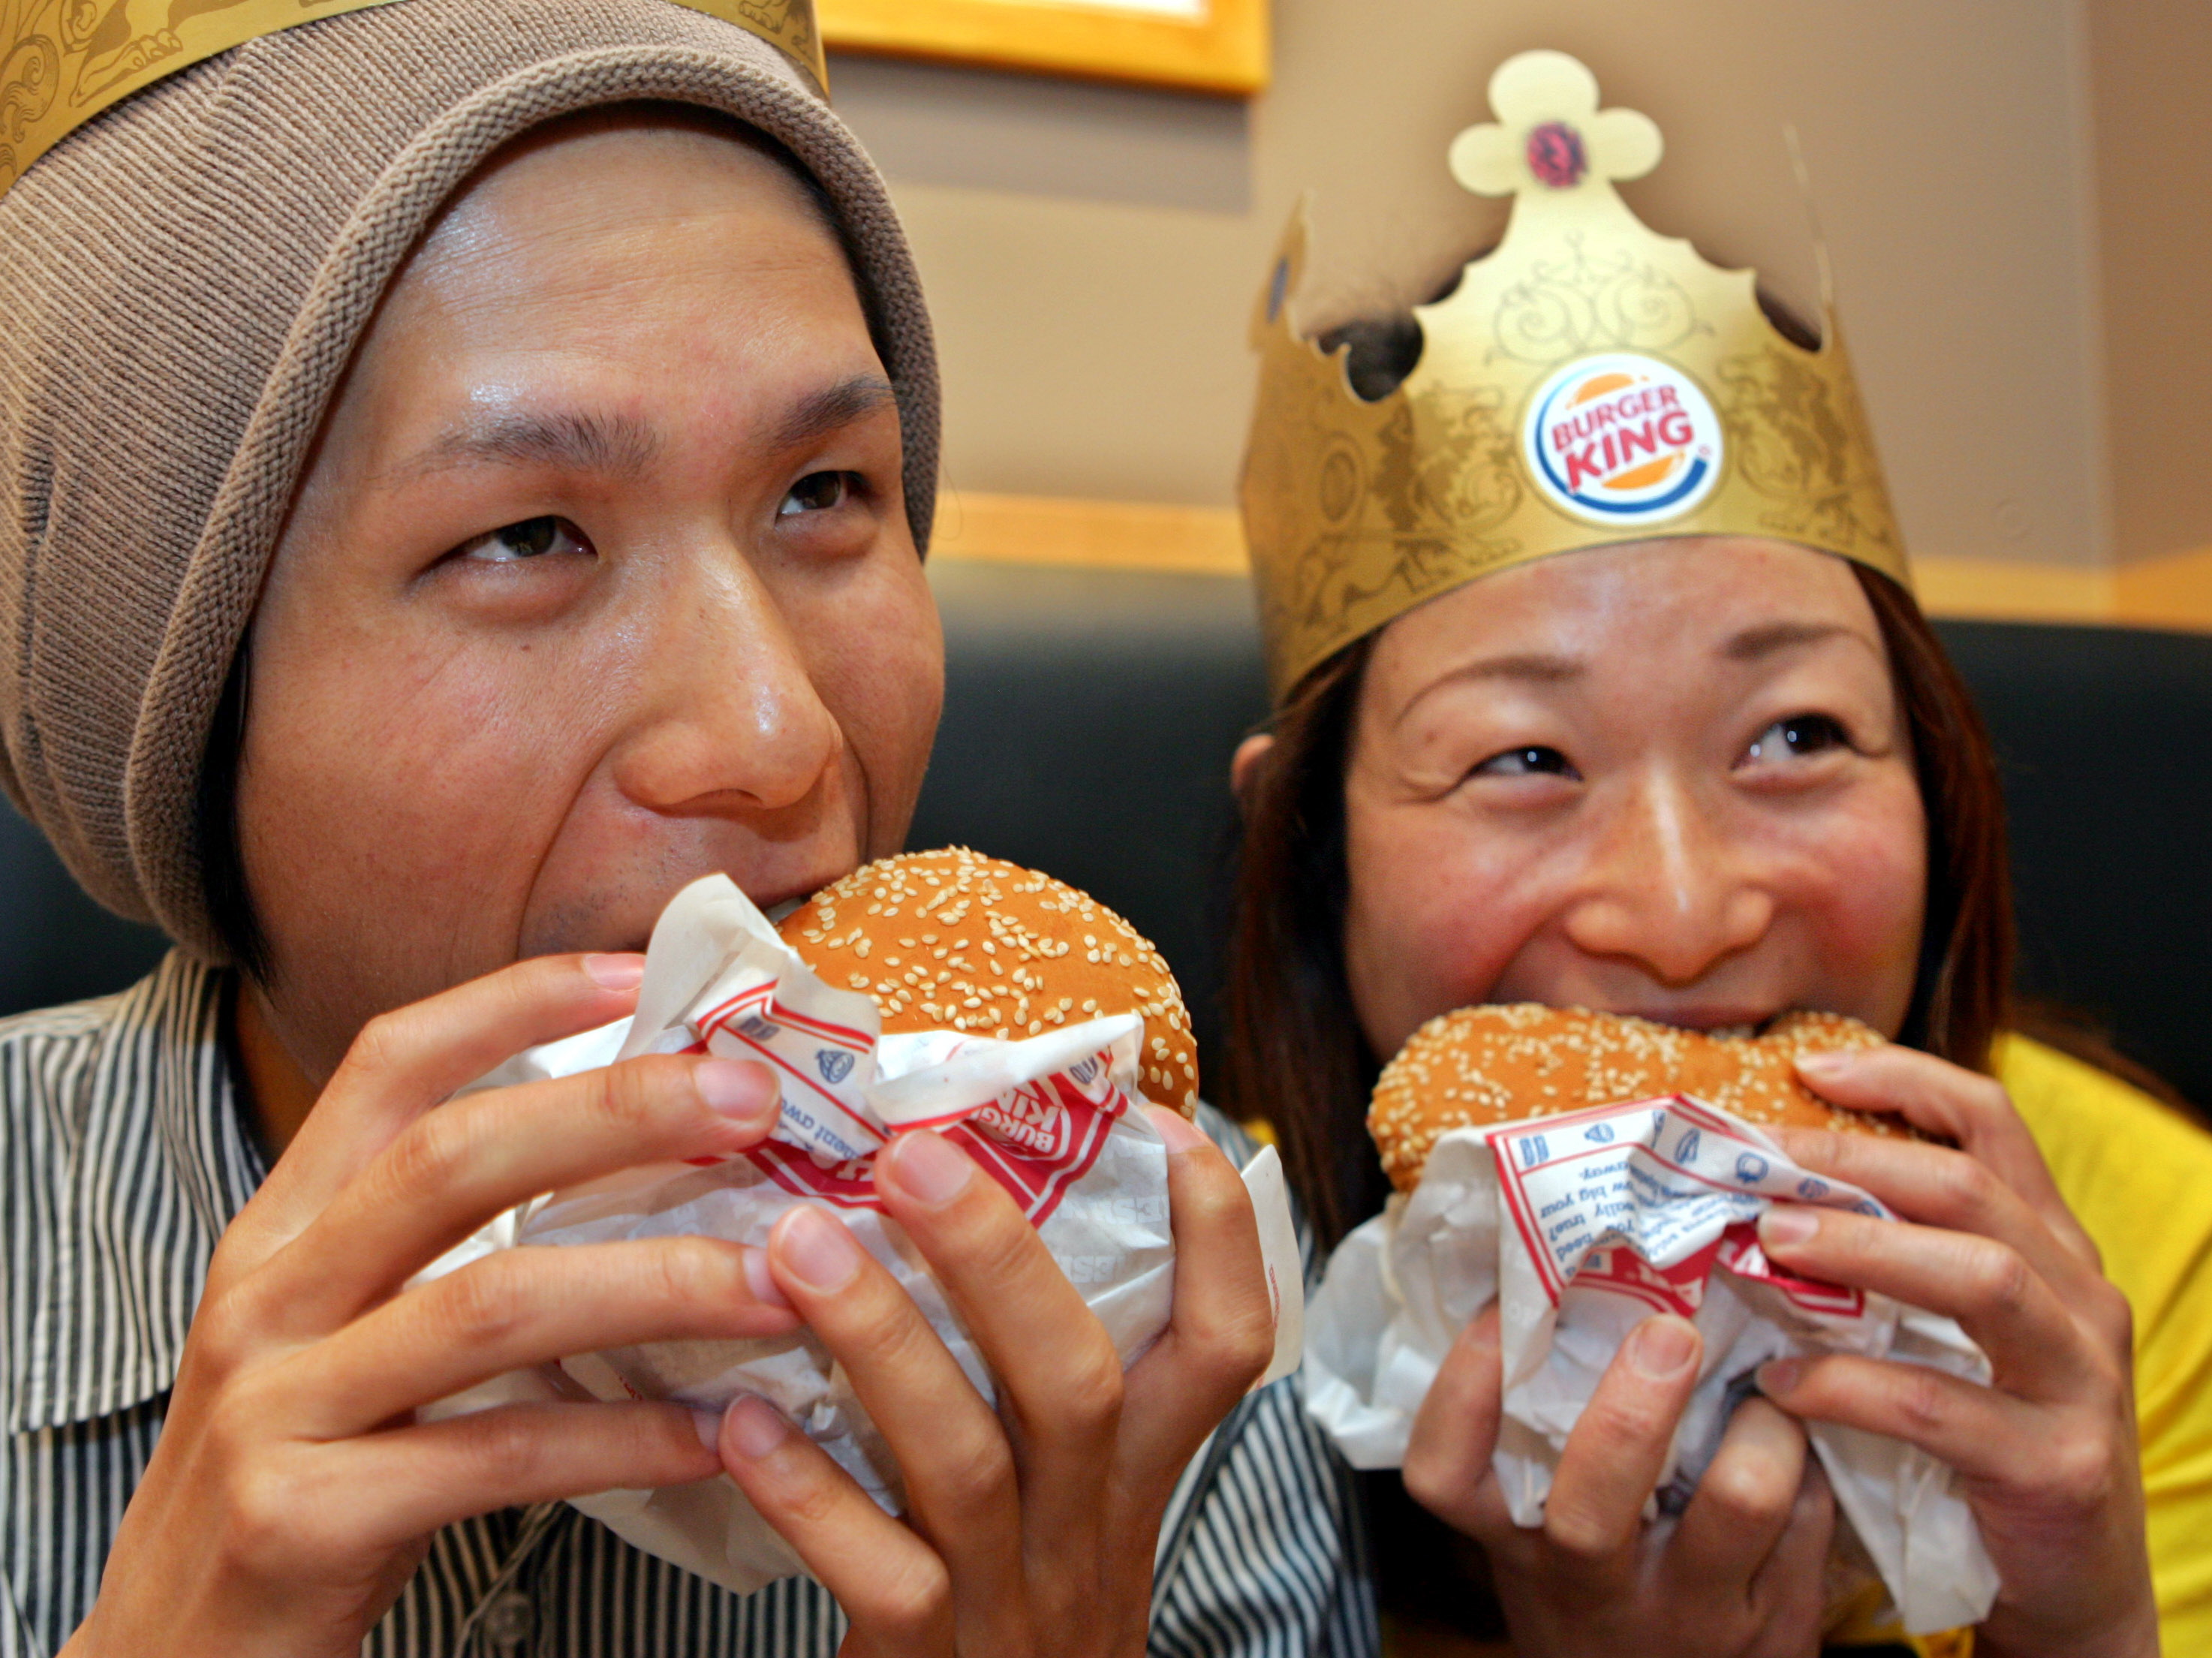 Japan Burger King's Return